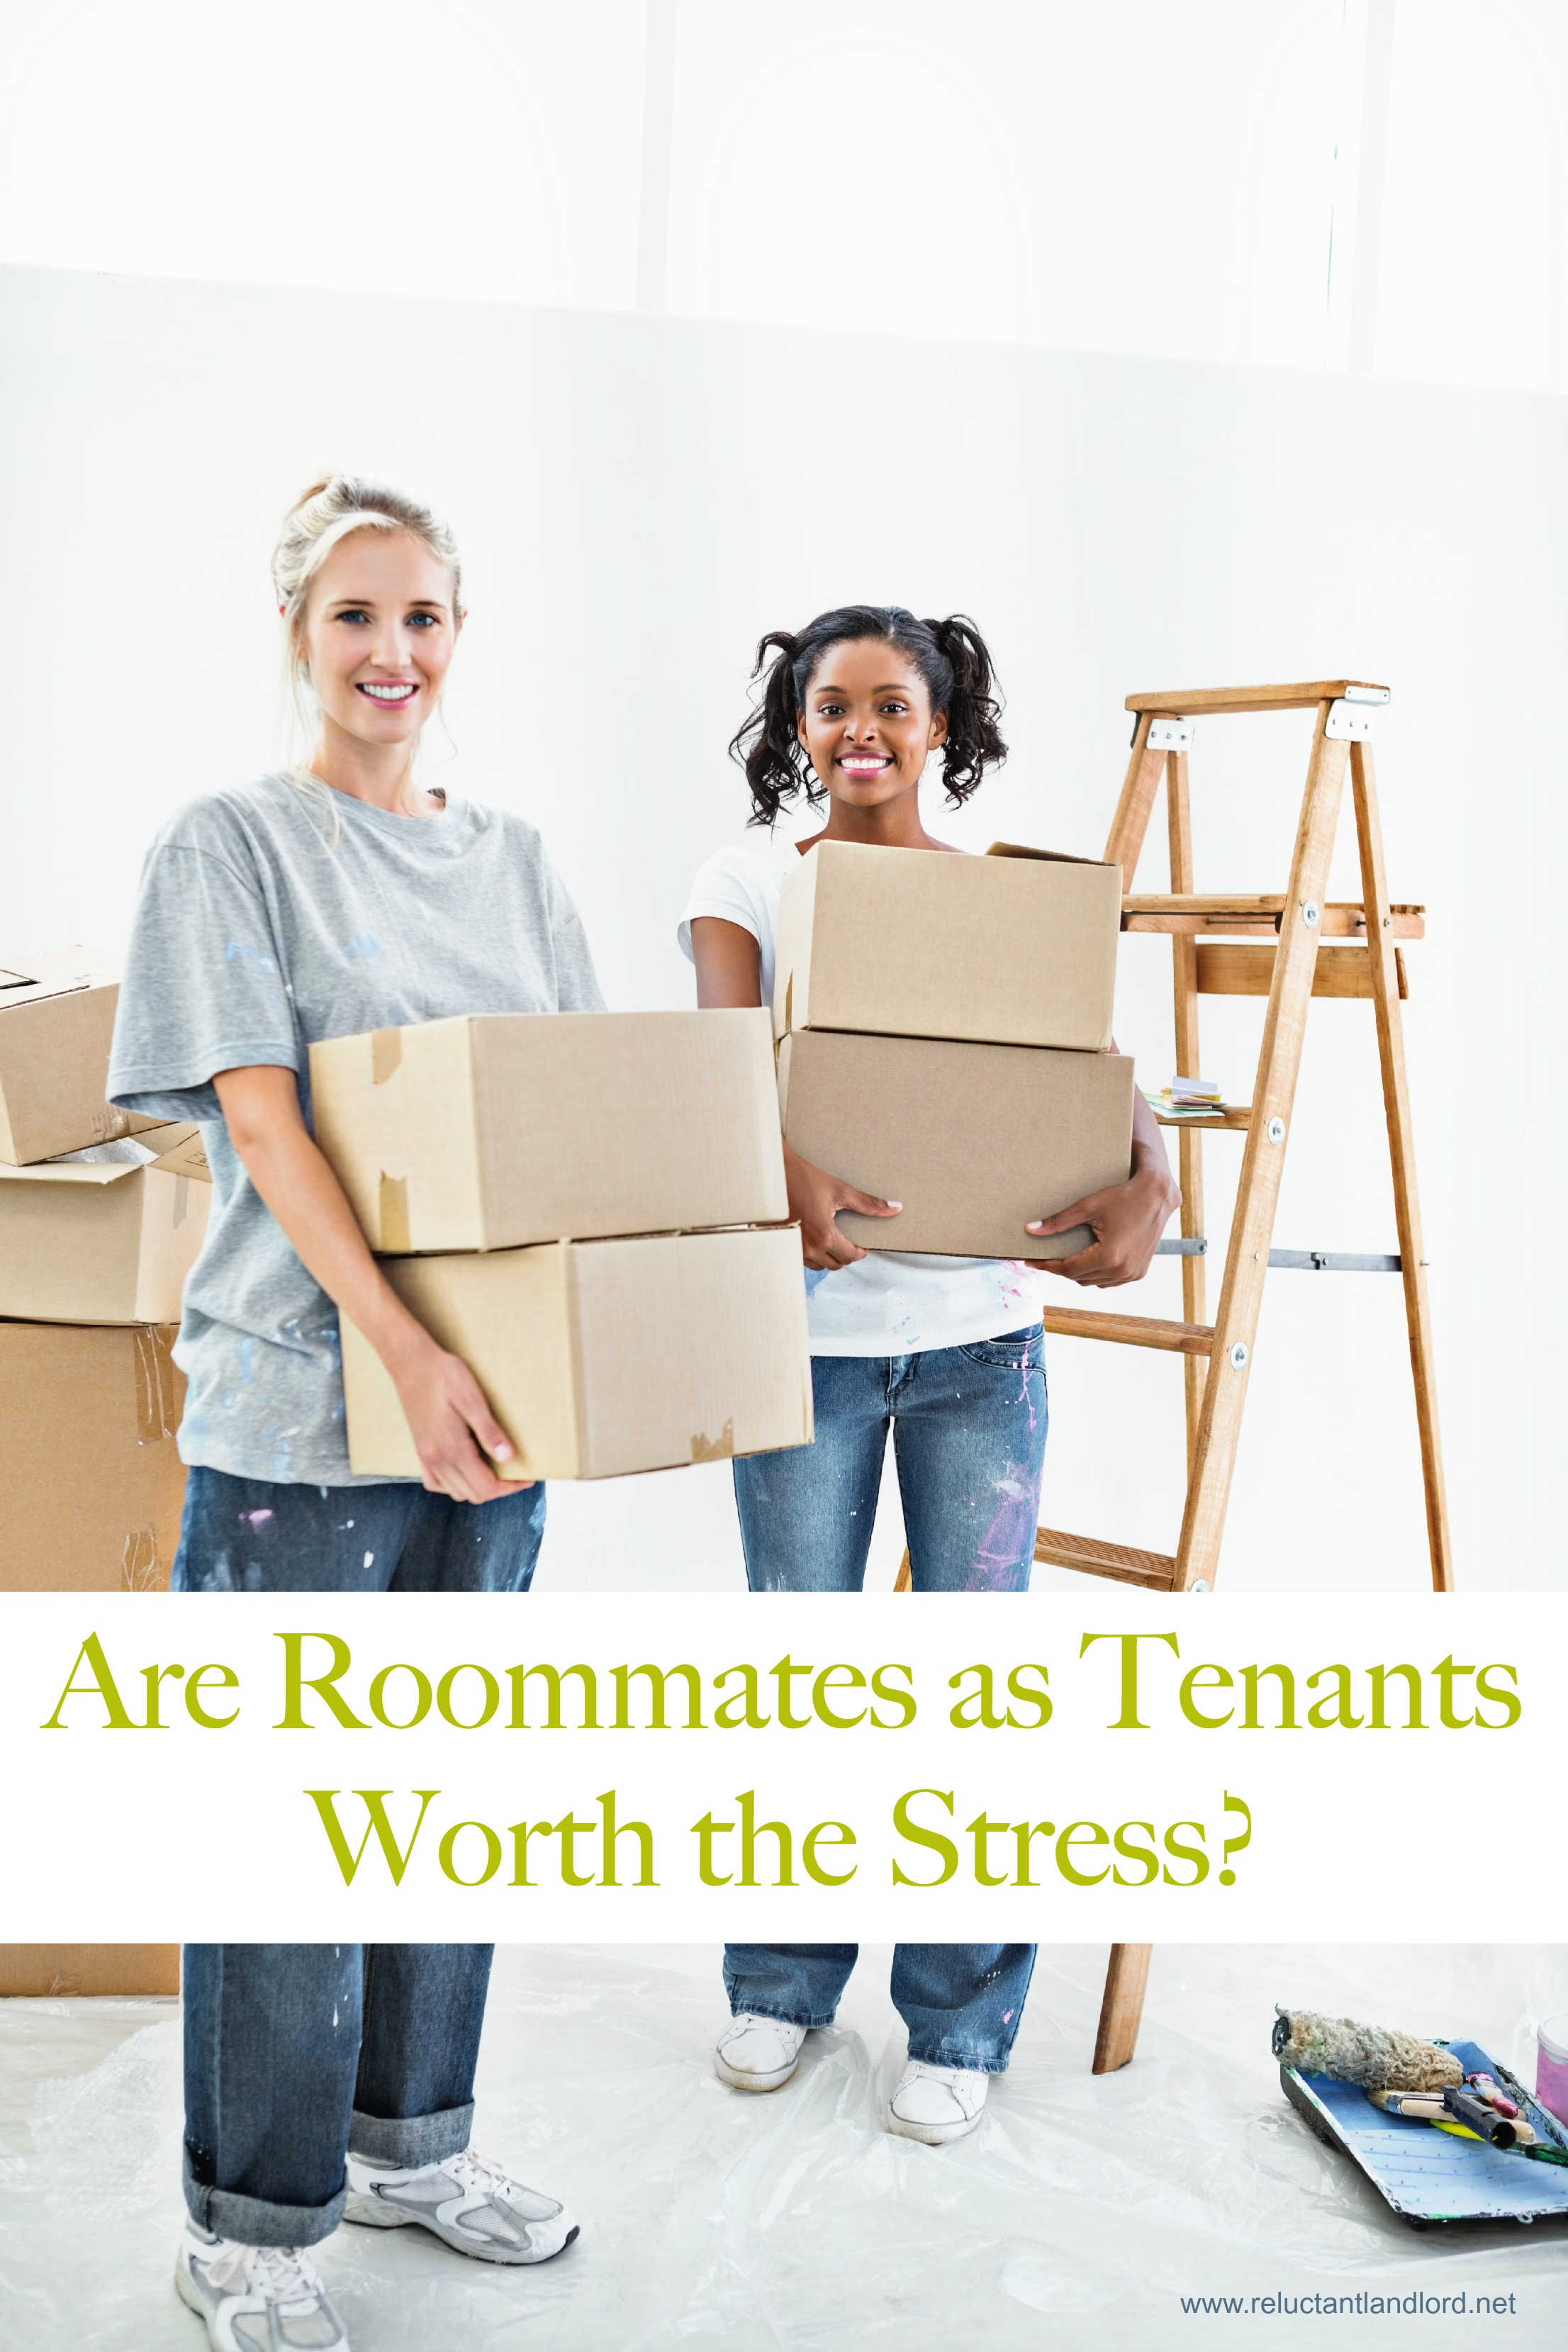 Are Roommates as Tenants Worth the Stress?